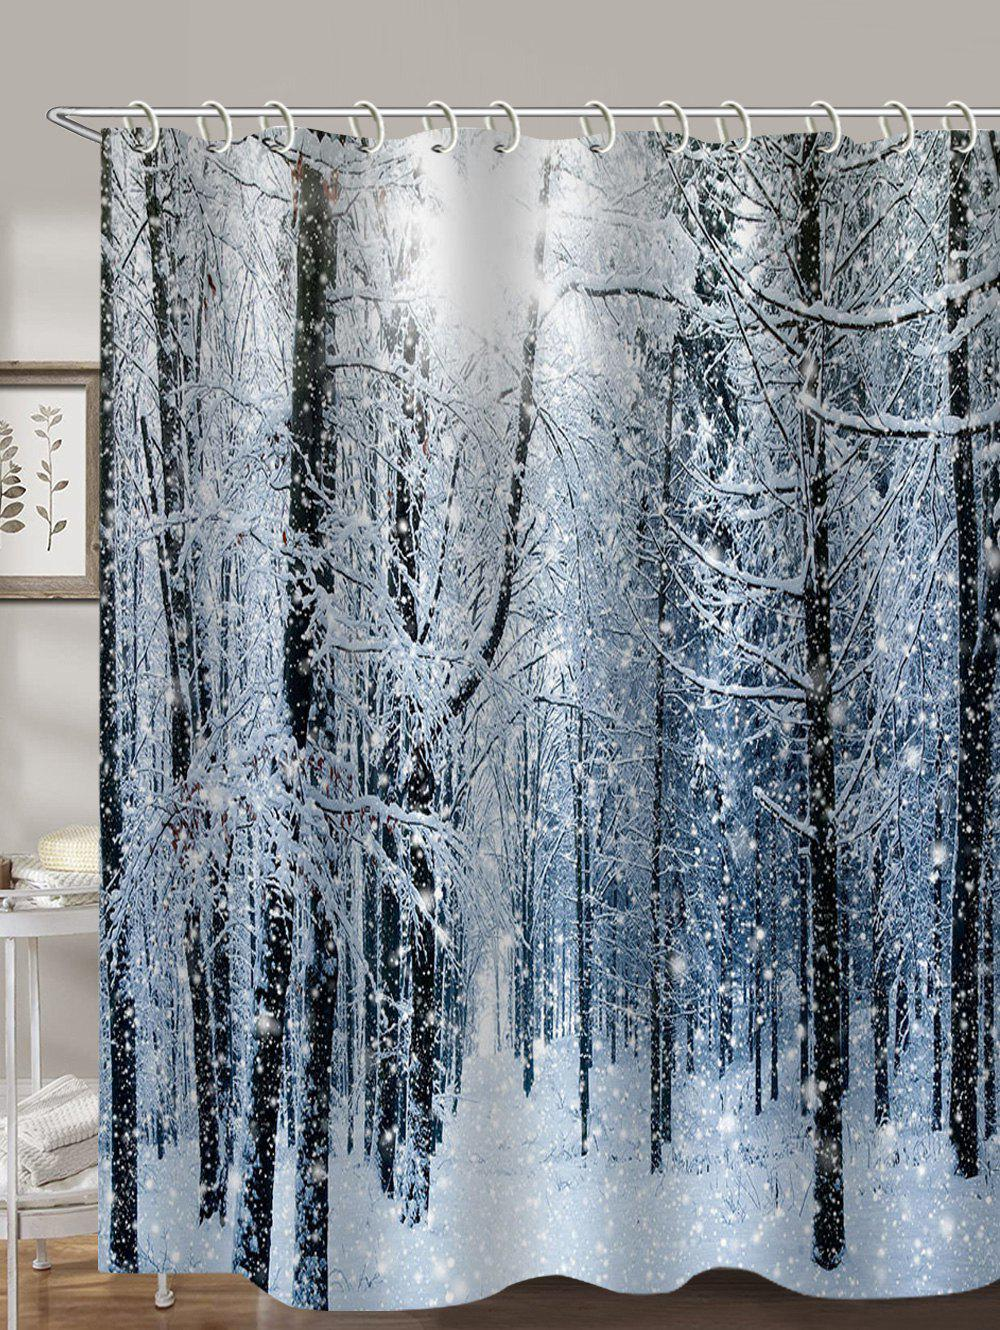 Trendy Snow Forest 3D Print Shower Curtain